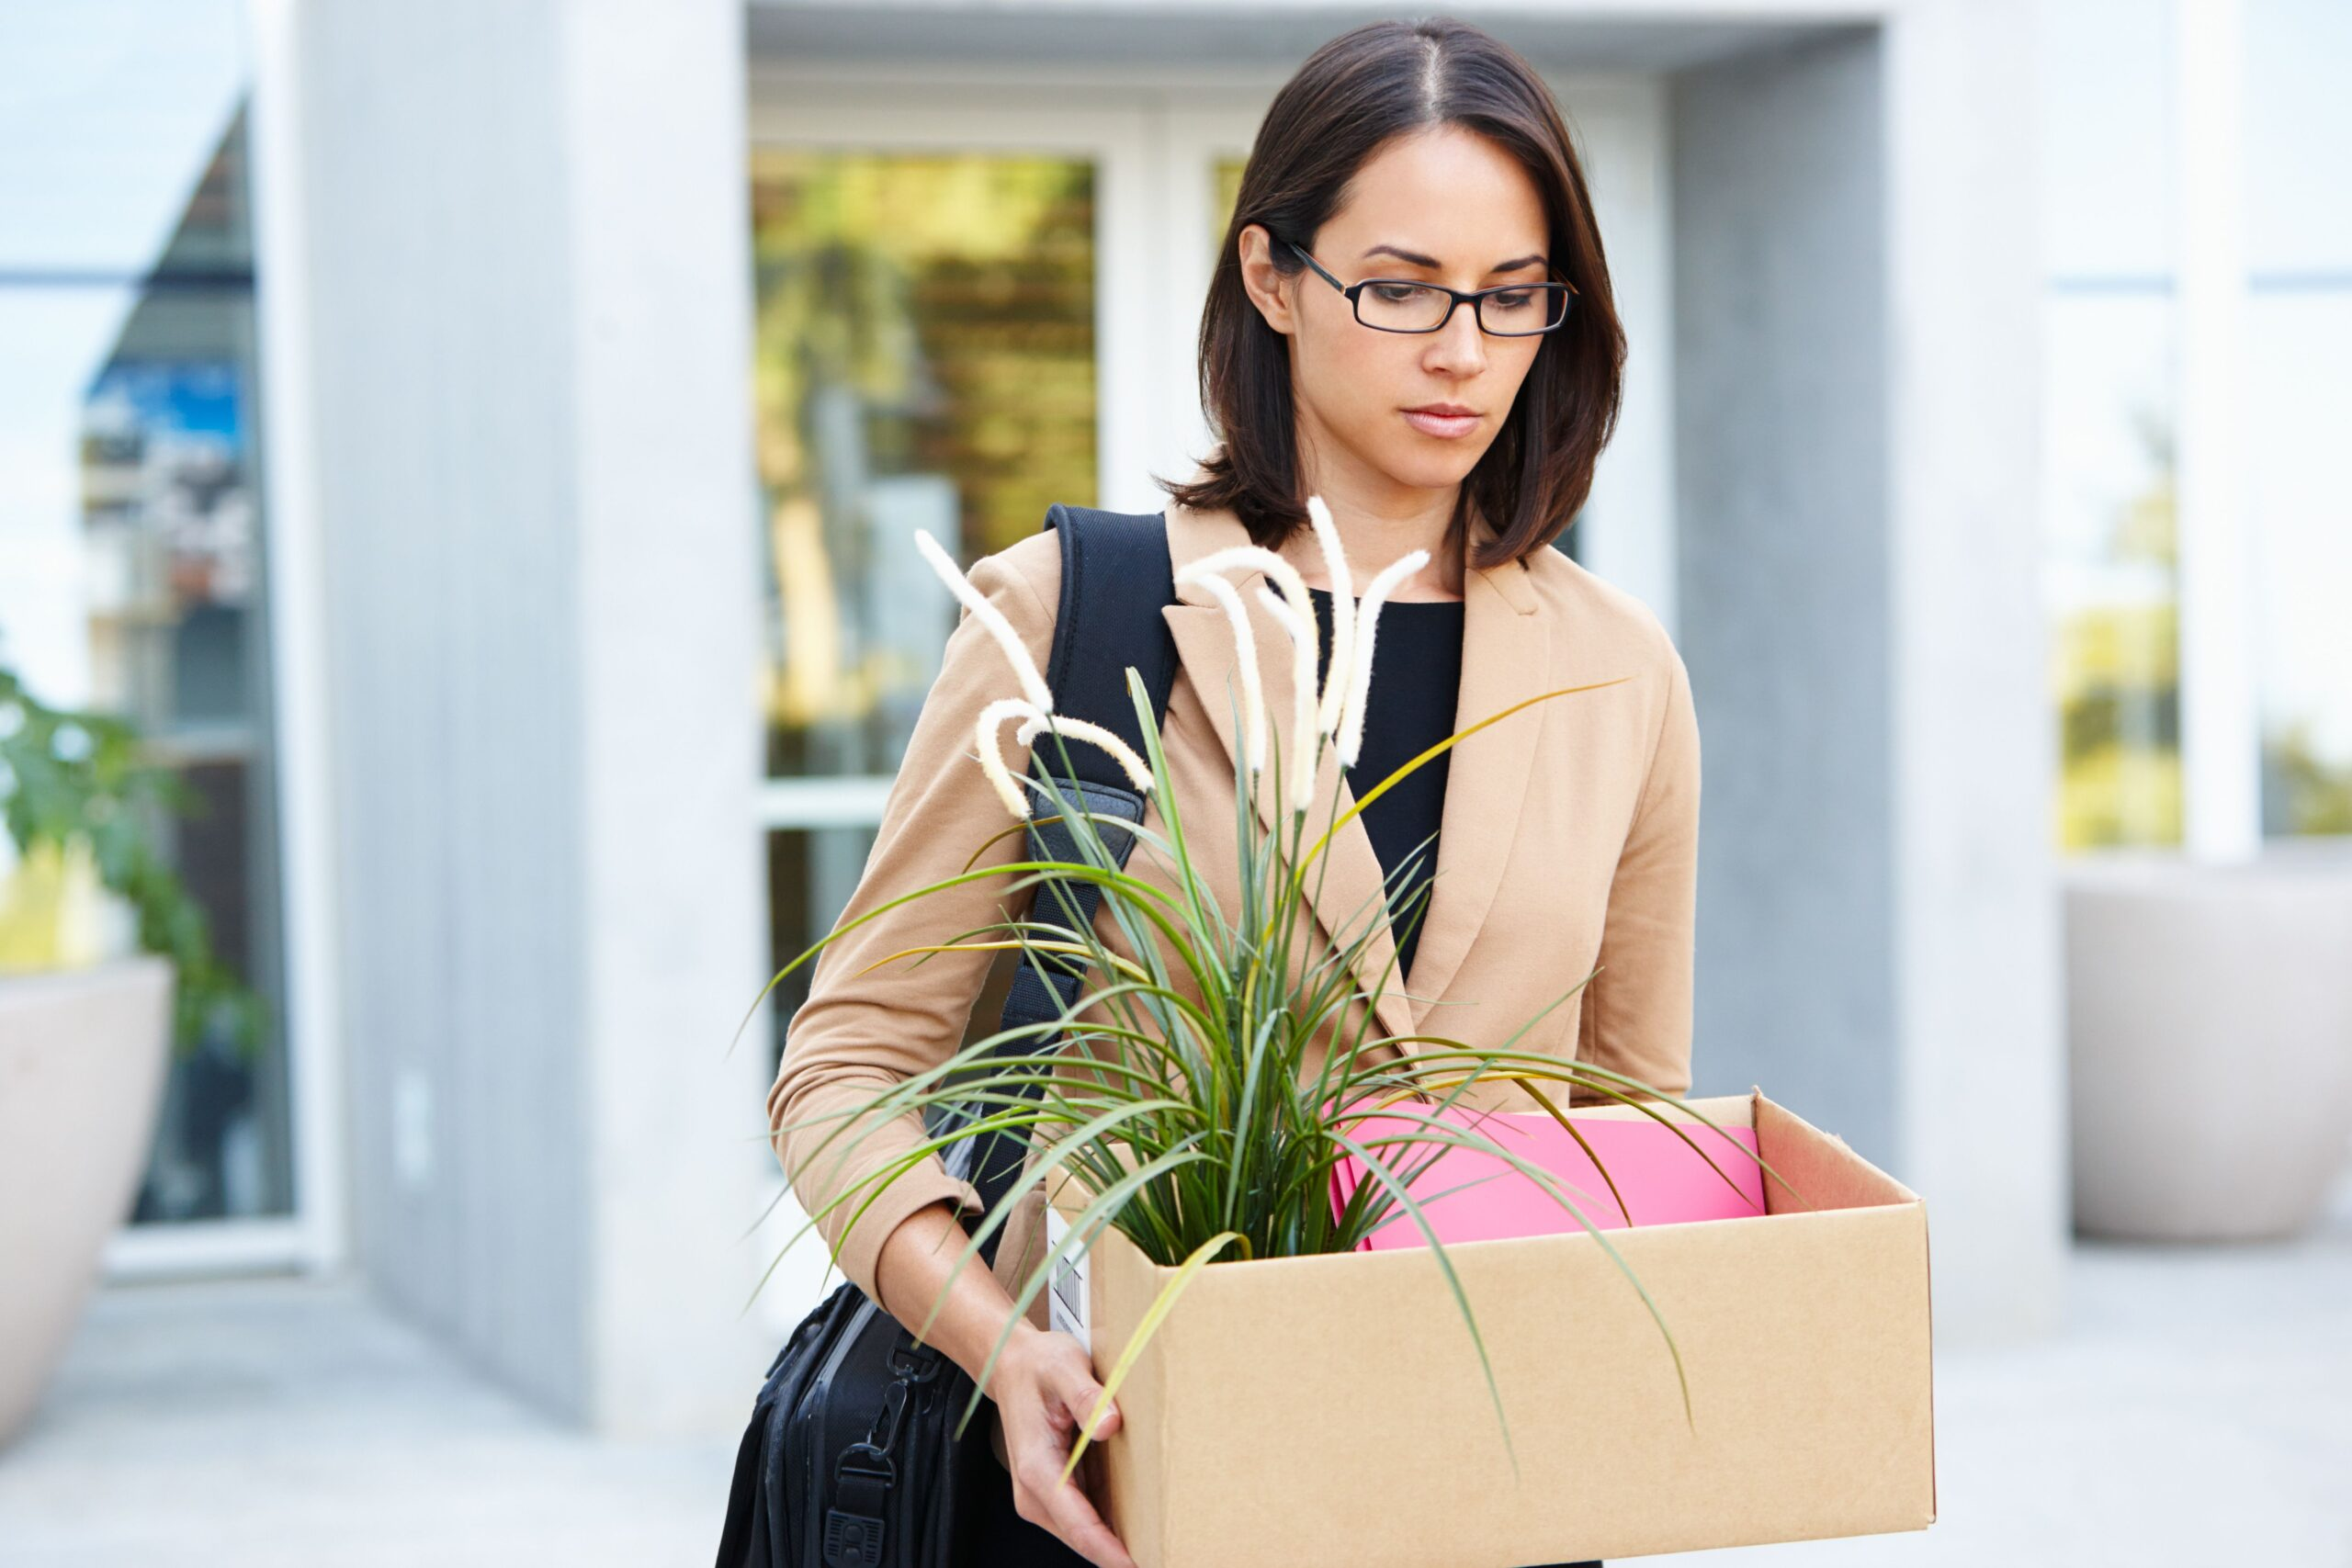 What happens if I am made redundant in an IVA